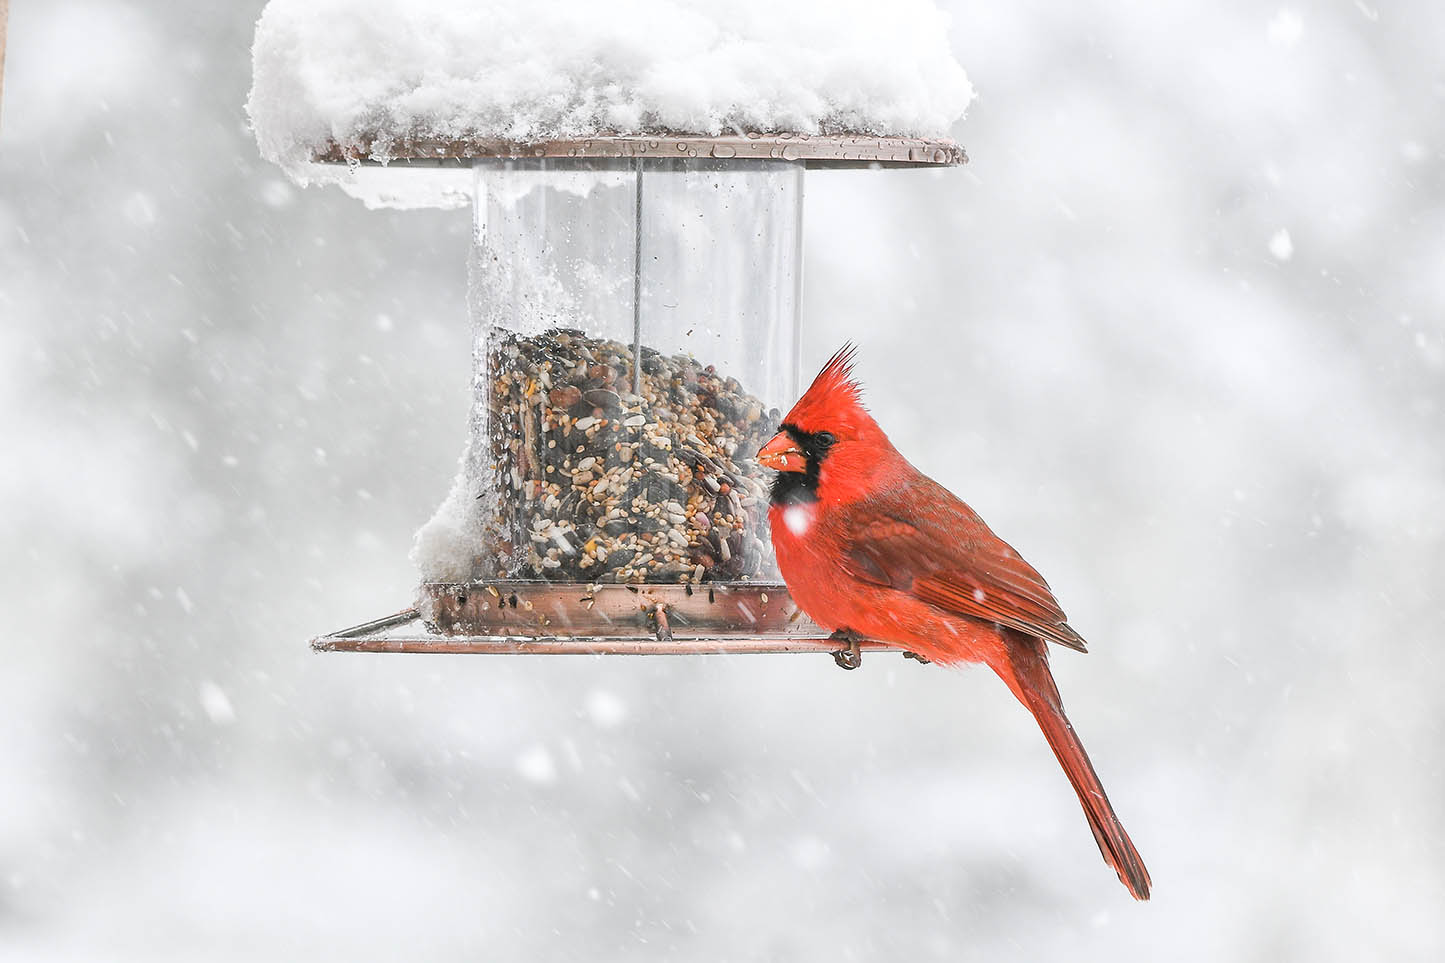 A red cardinal sits perched on a bird feeder during a snow fall